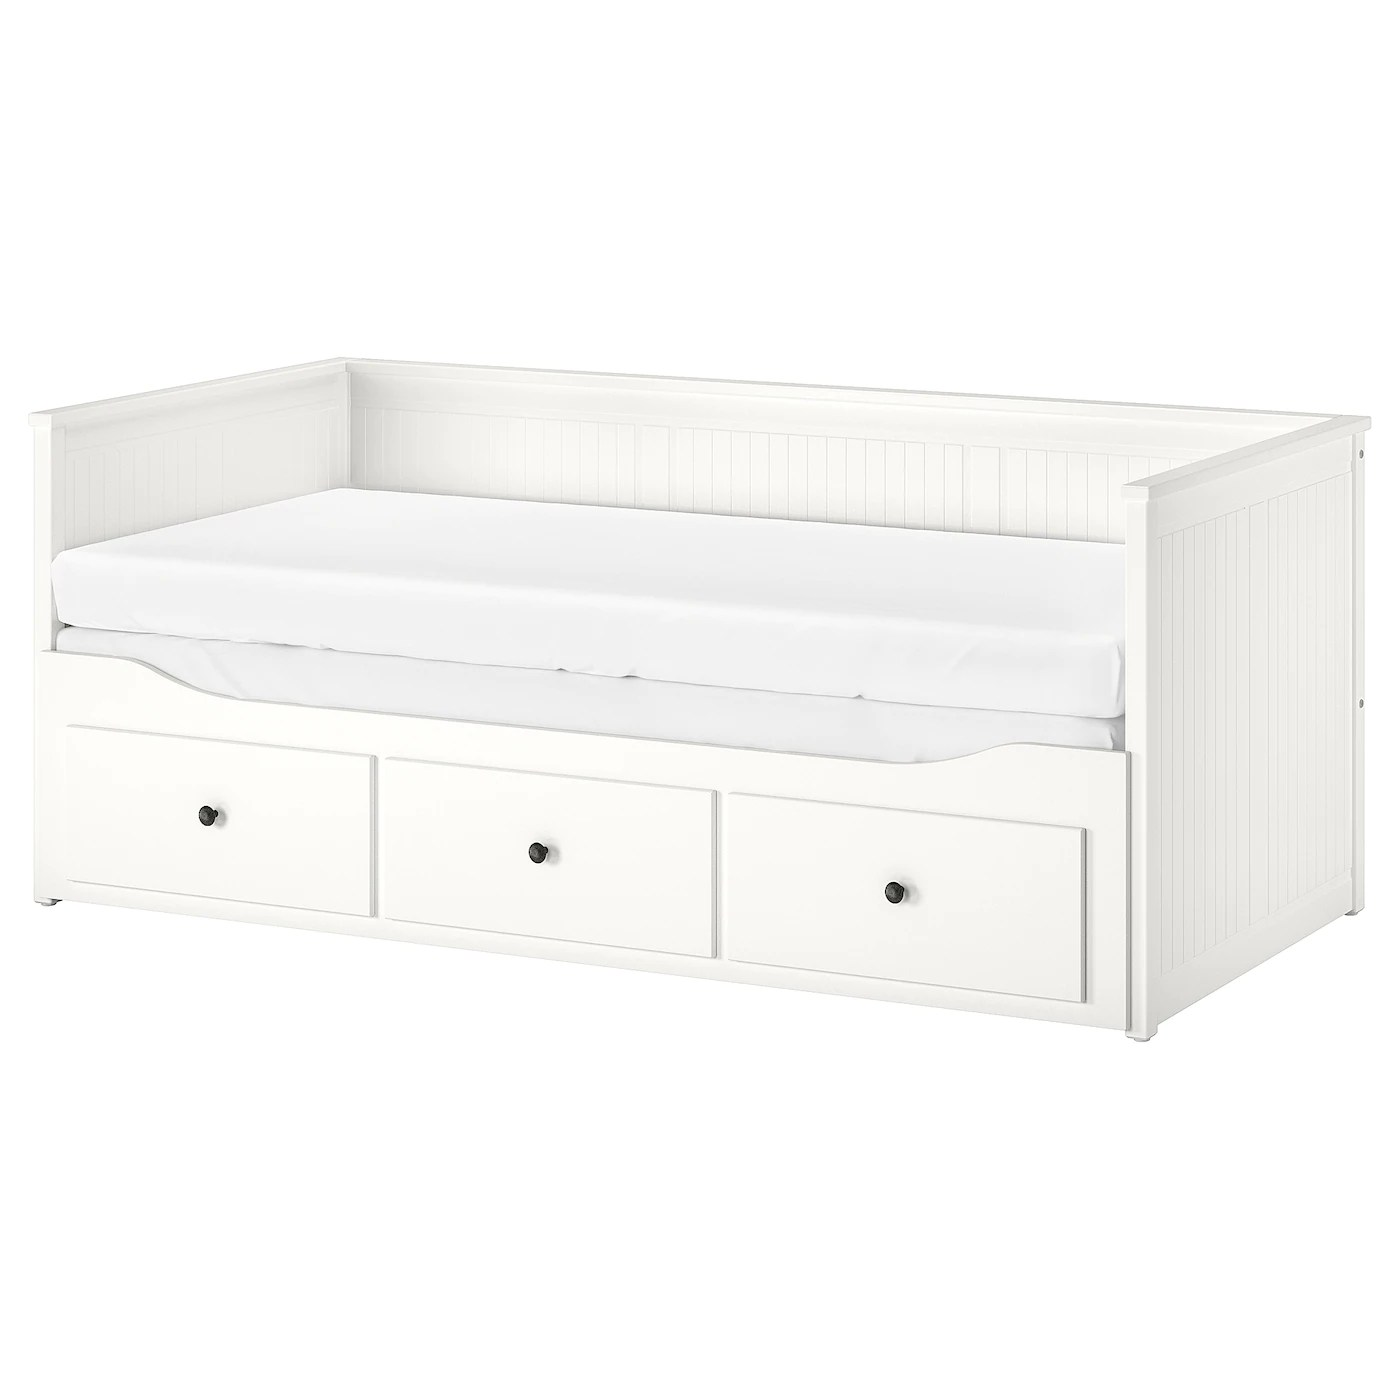 Day Bed Frame With 3 Drawers Hemnes White